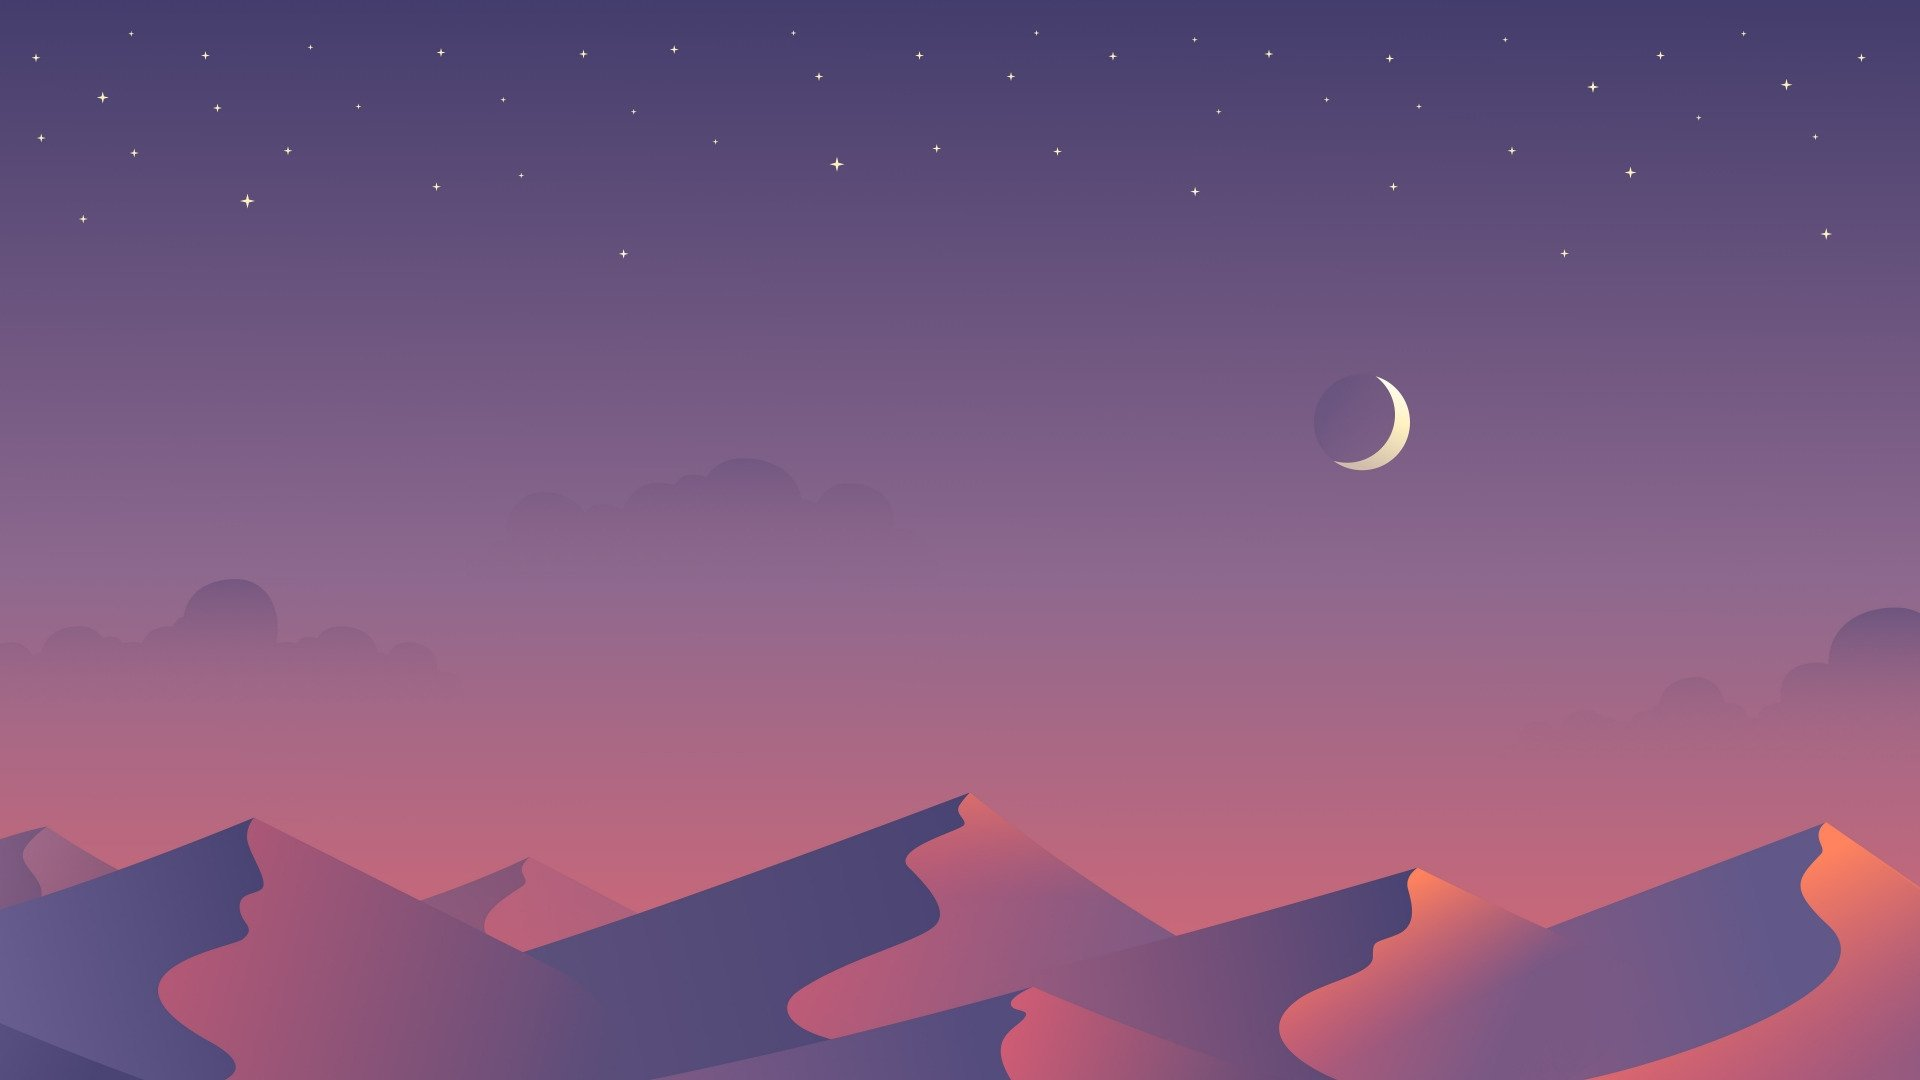 Aesthetic Moon Wallpapers: 20+ Images - WallpaperBoat